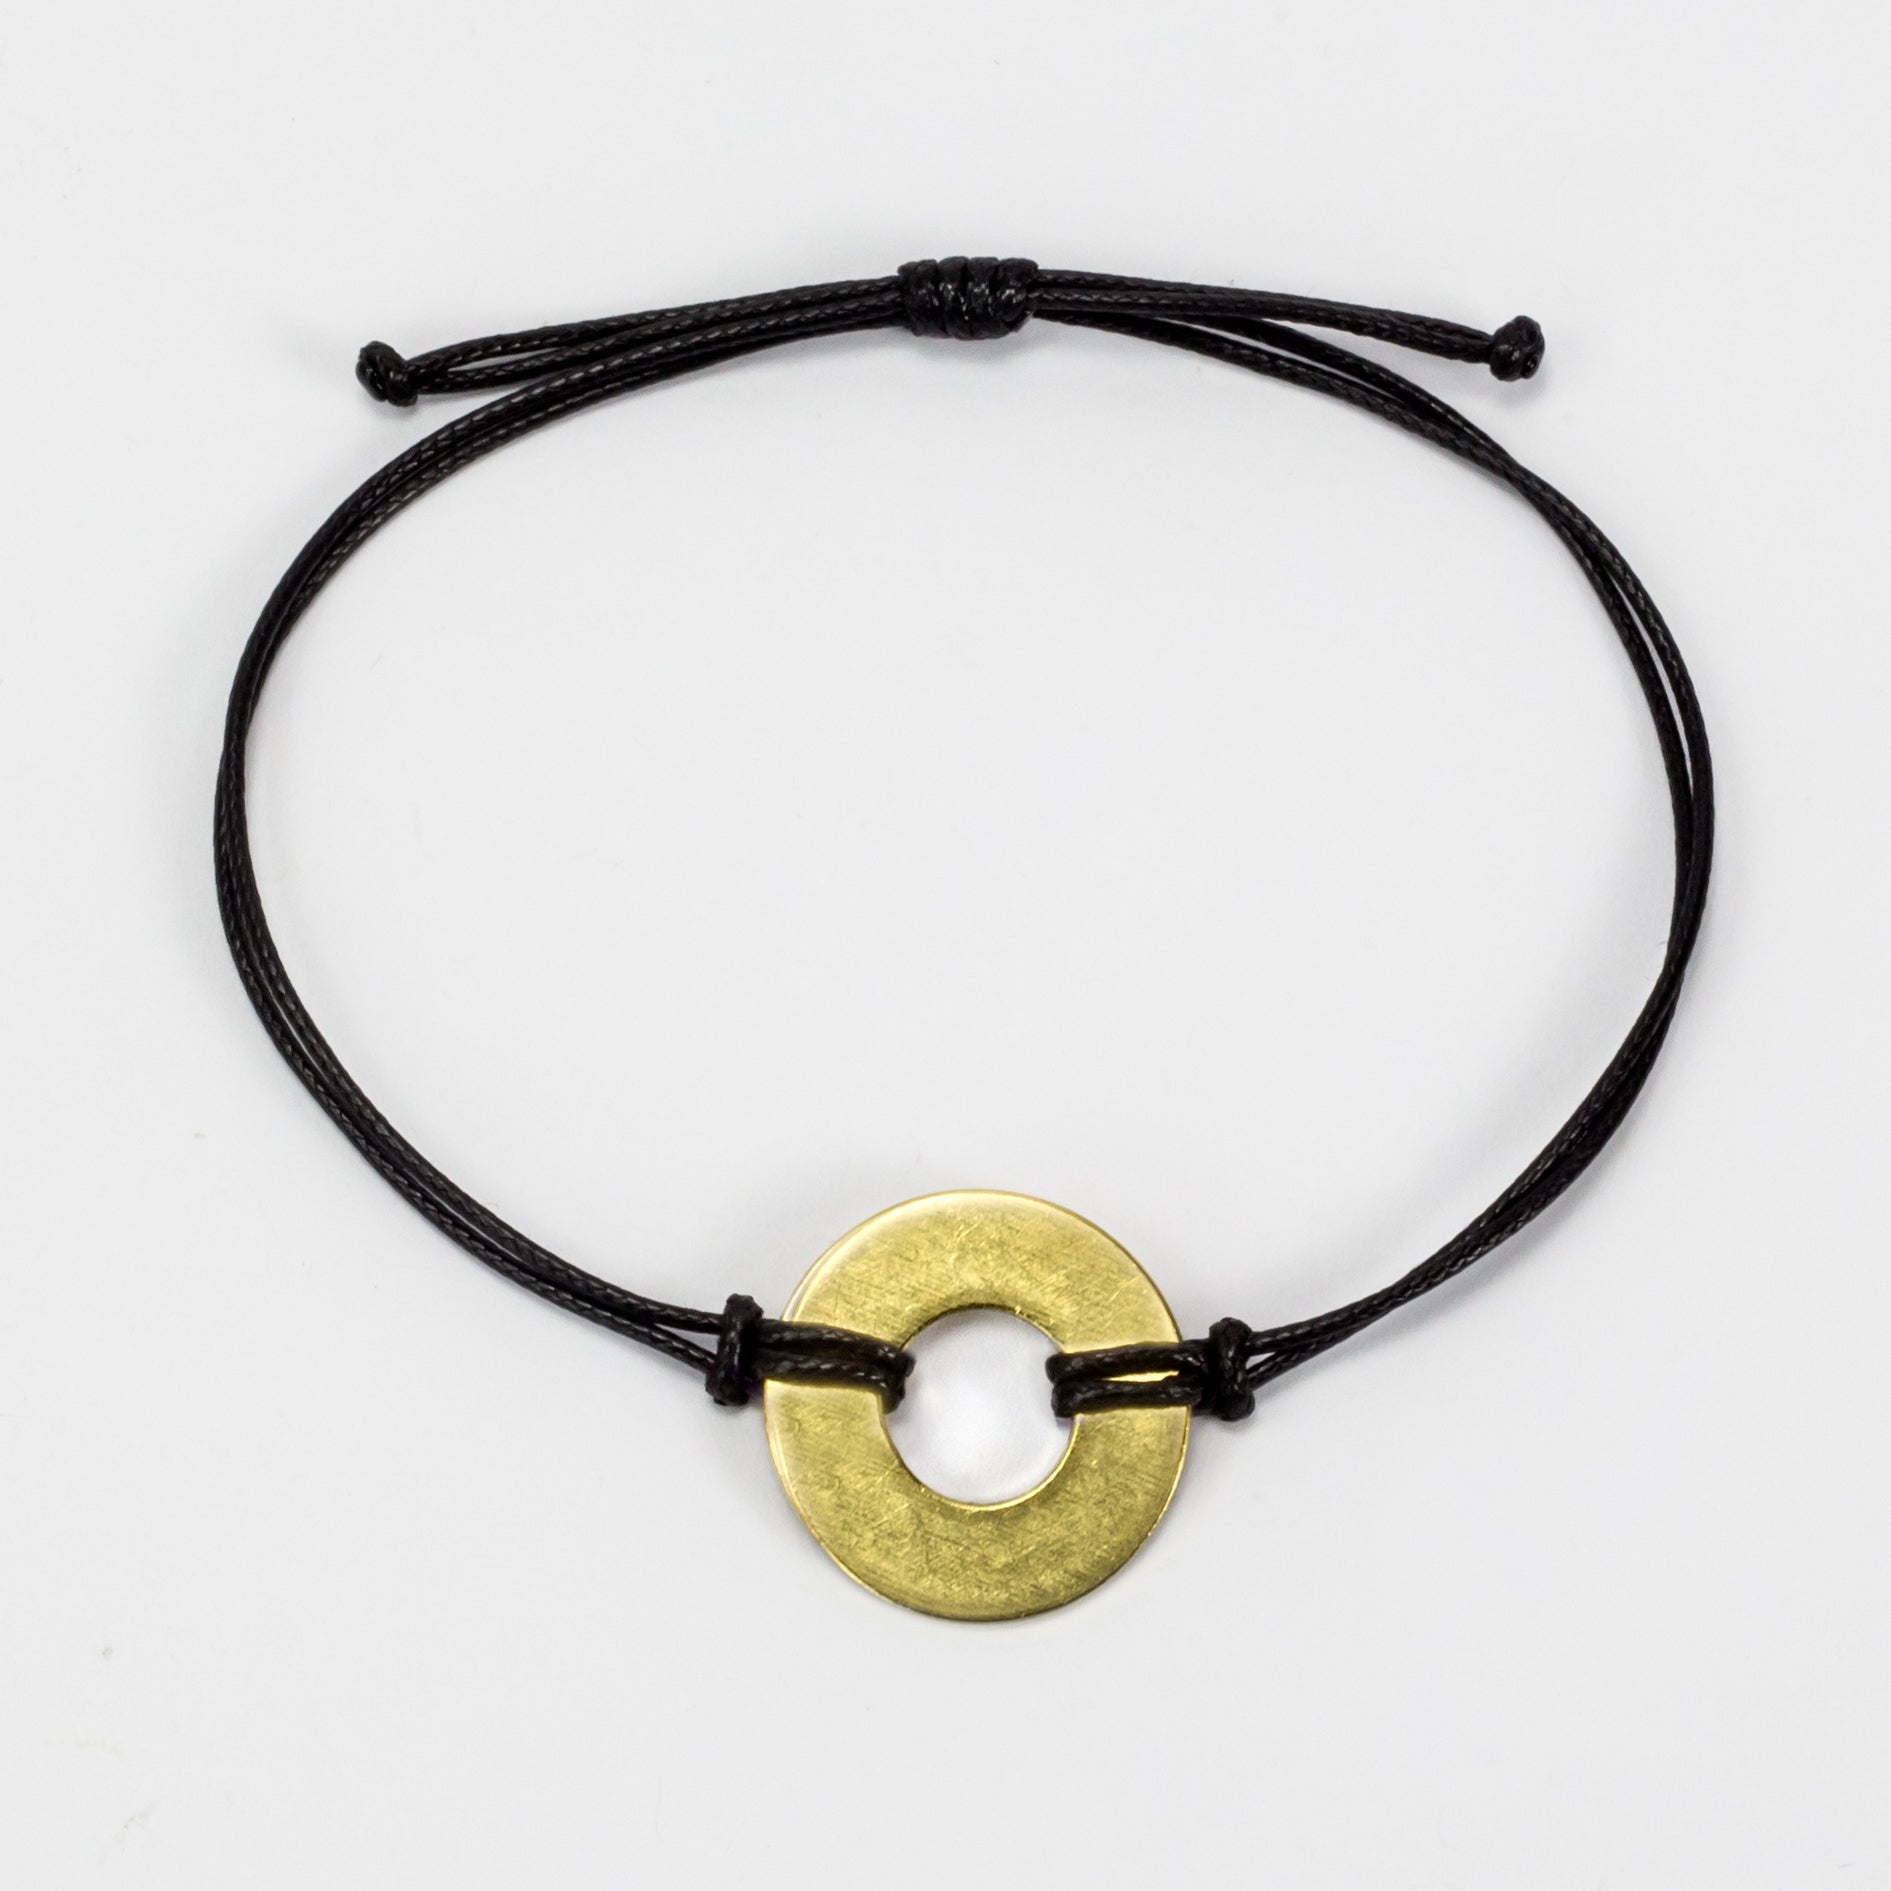 MyIntent Refill Classic Bracelet Black String with Brass token